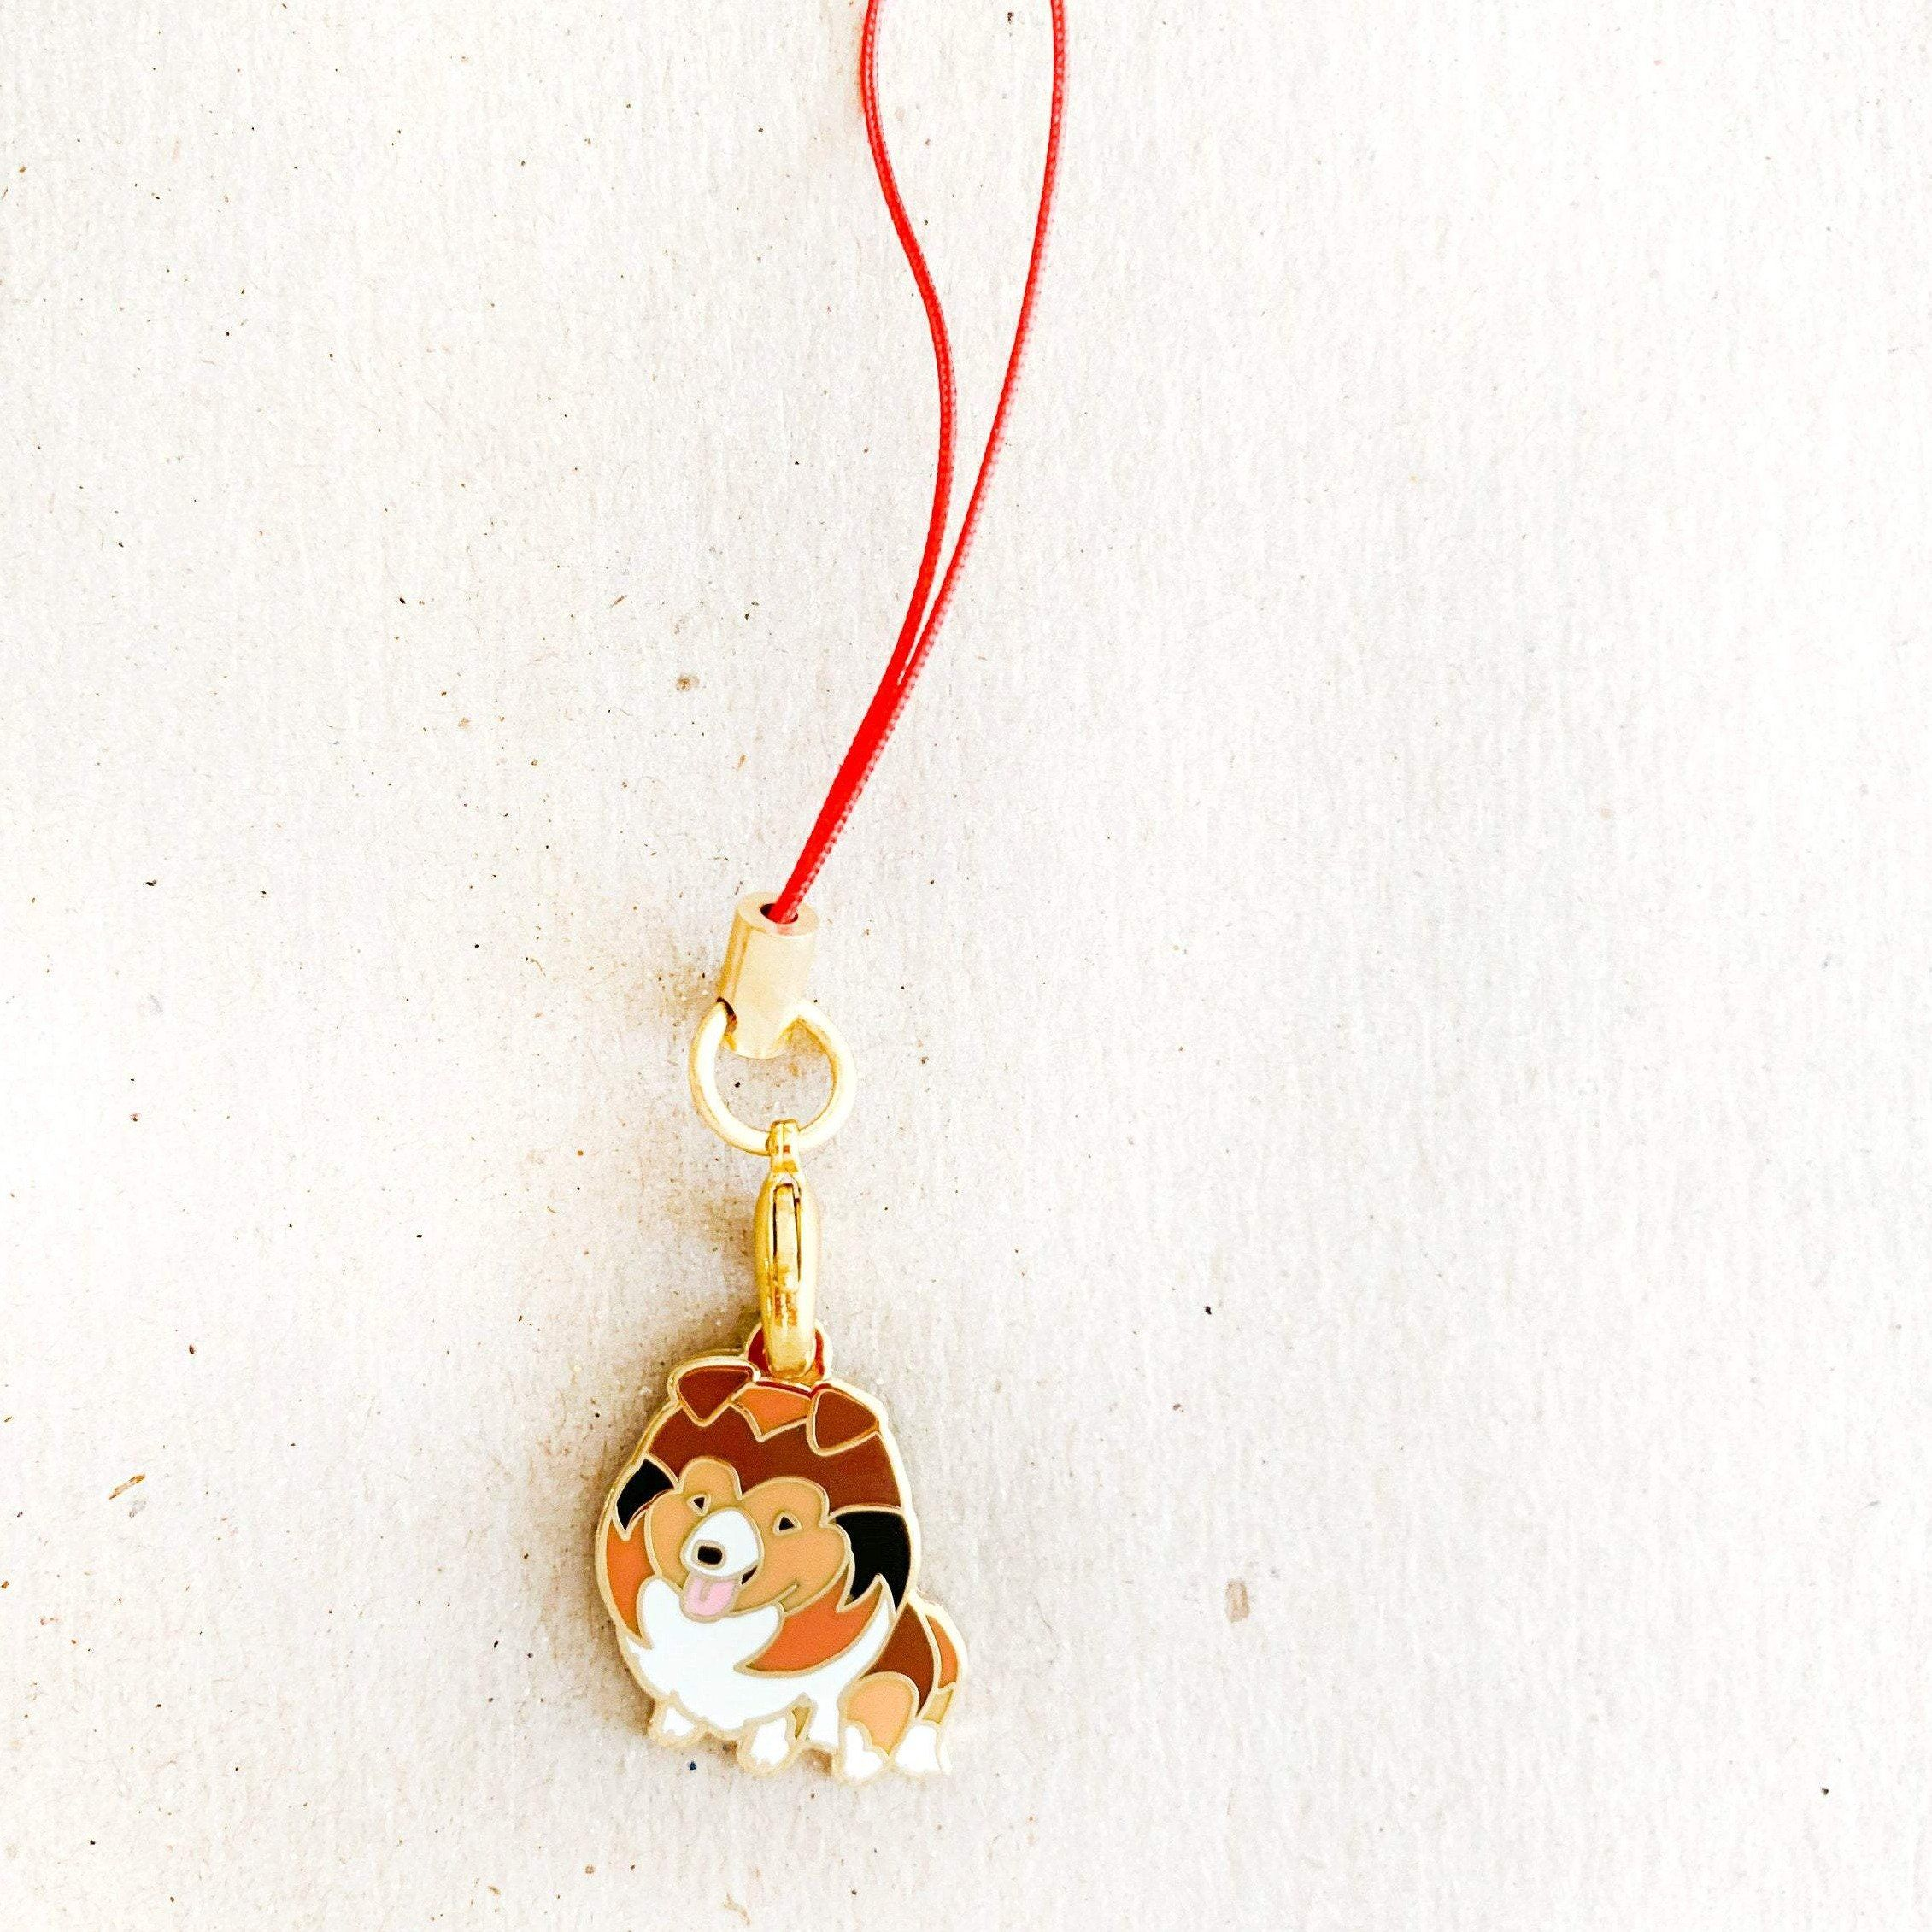 Enamel Charm - Collie Keychain (Sable and White)